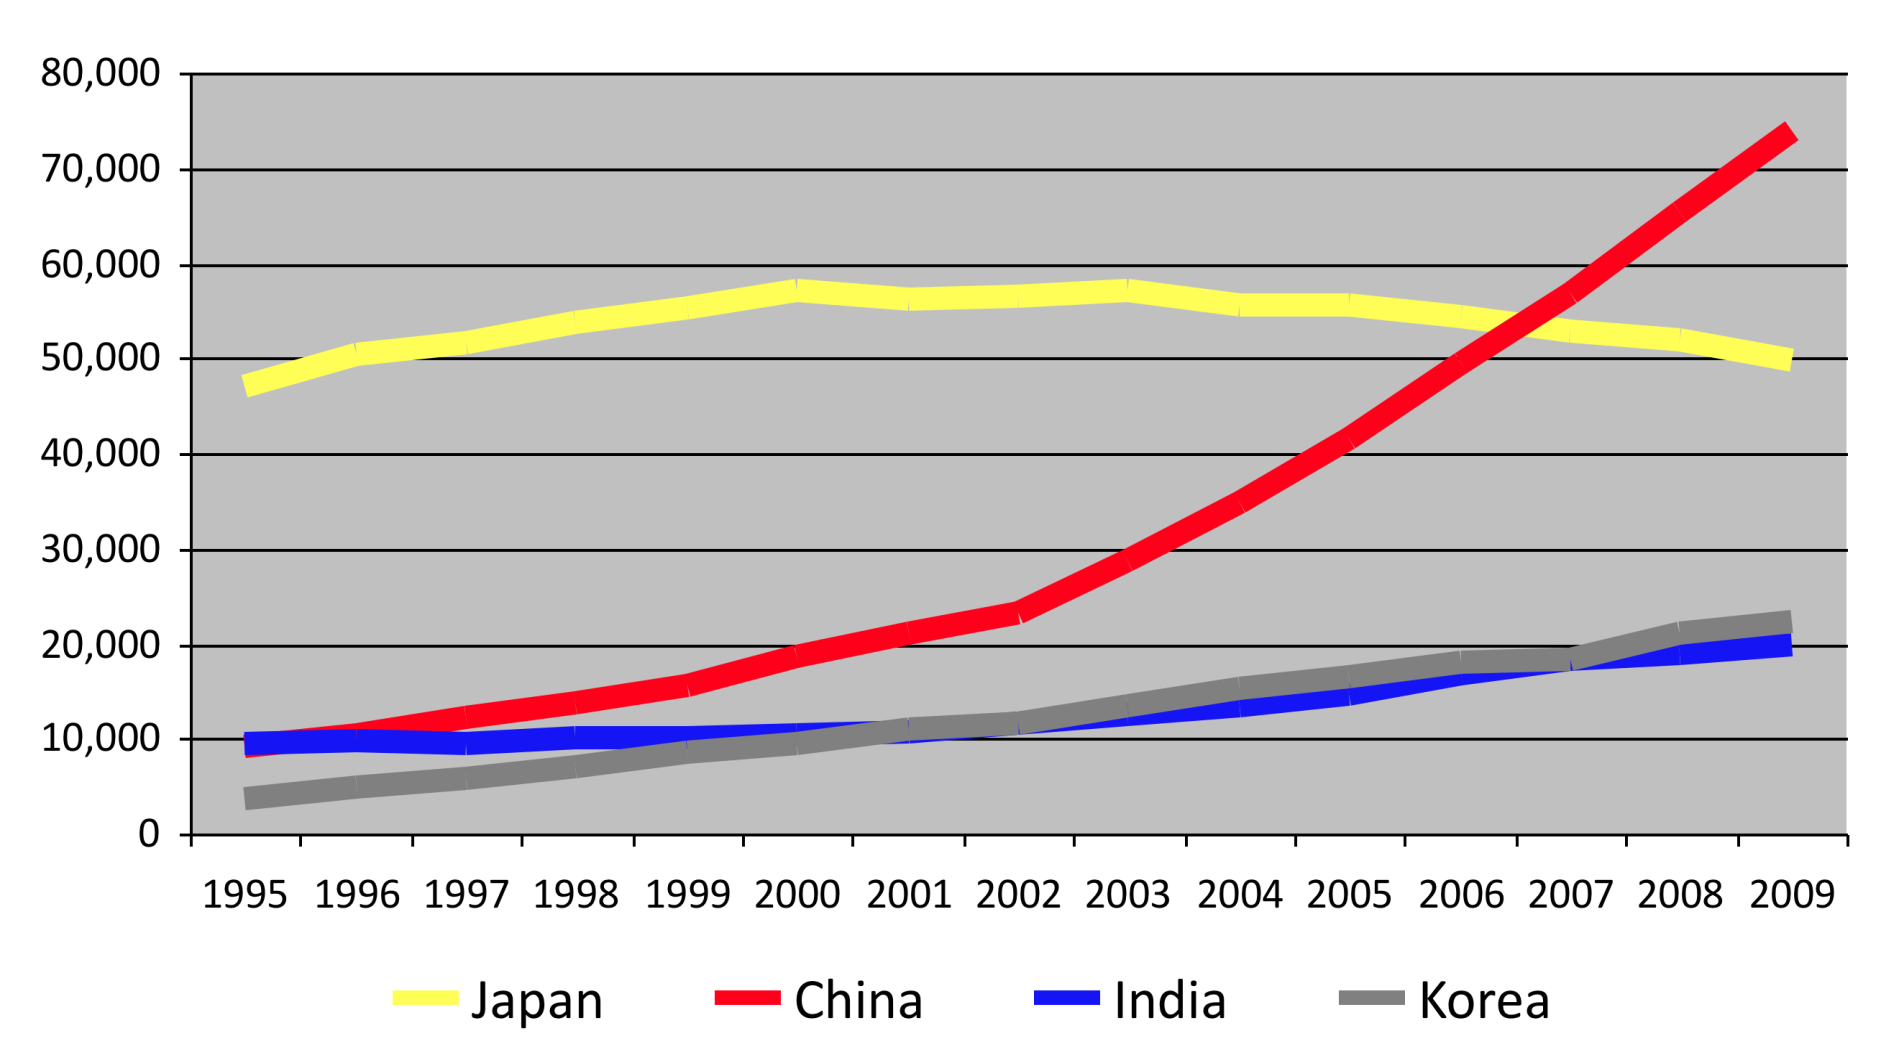 Research papers per year, 1995-2009 China, Japan,